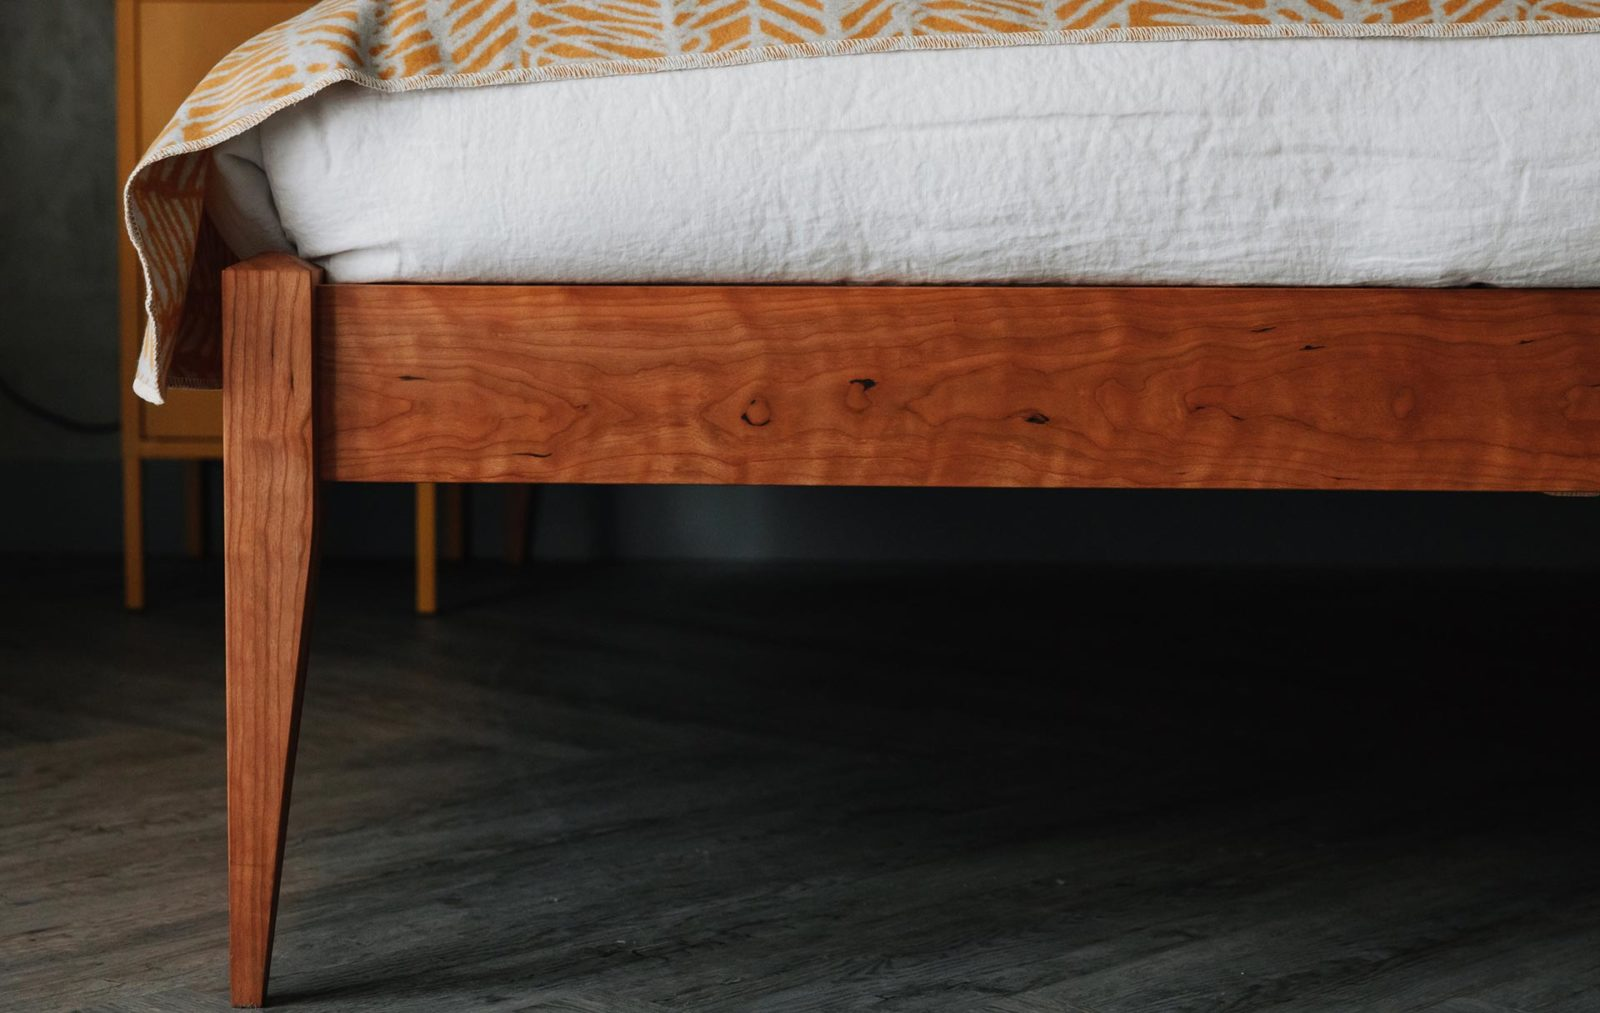 Cochin bed in solid cherry - leg detail